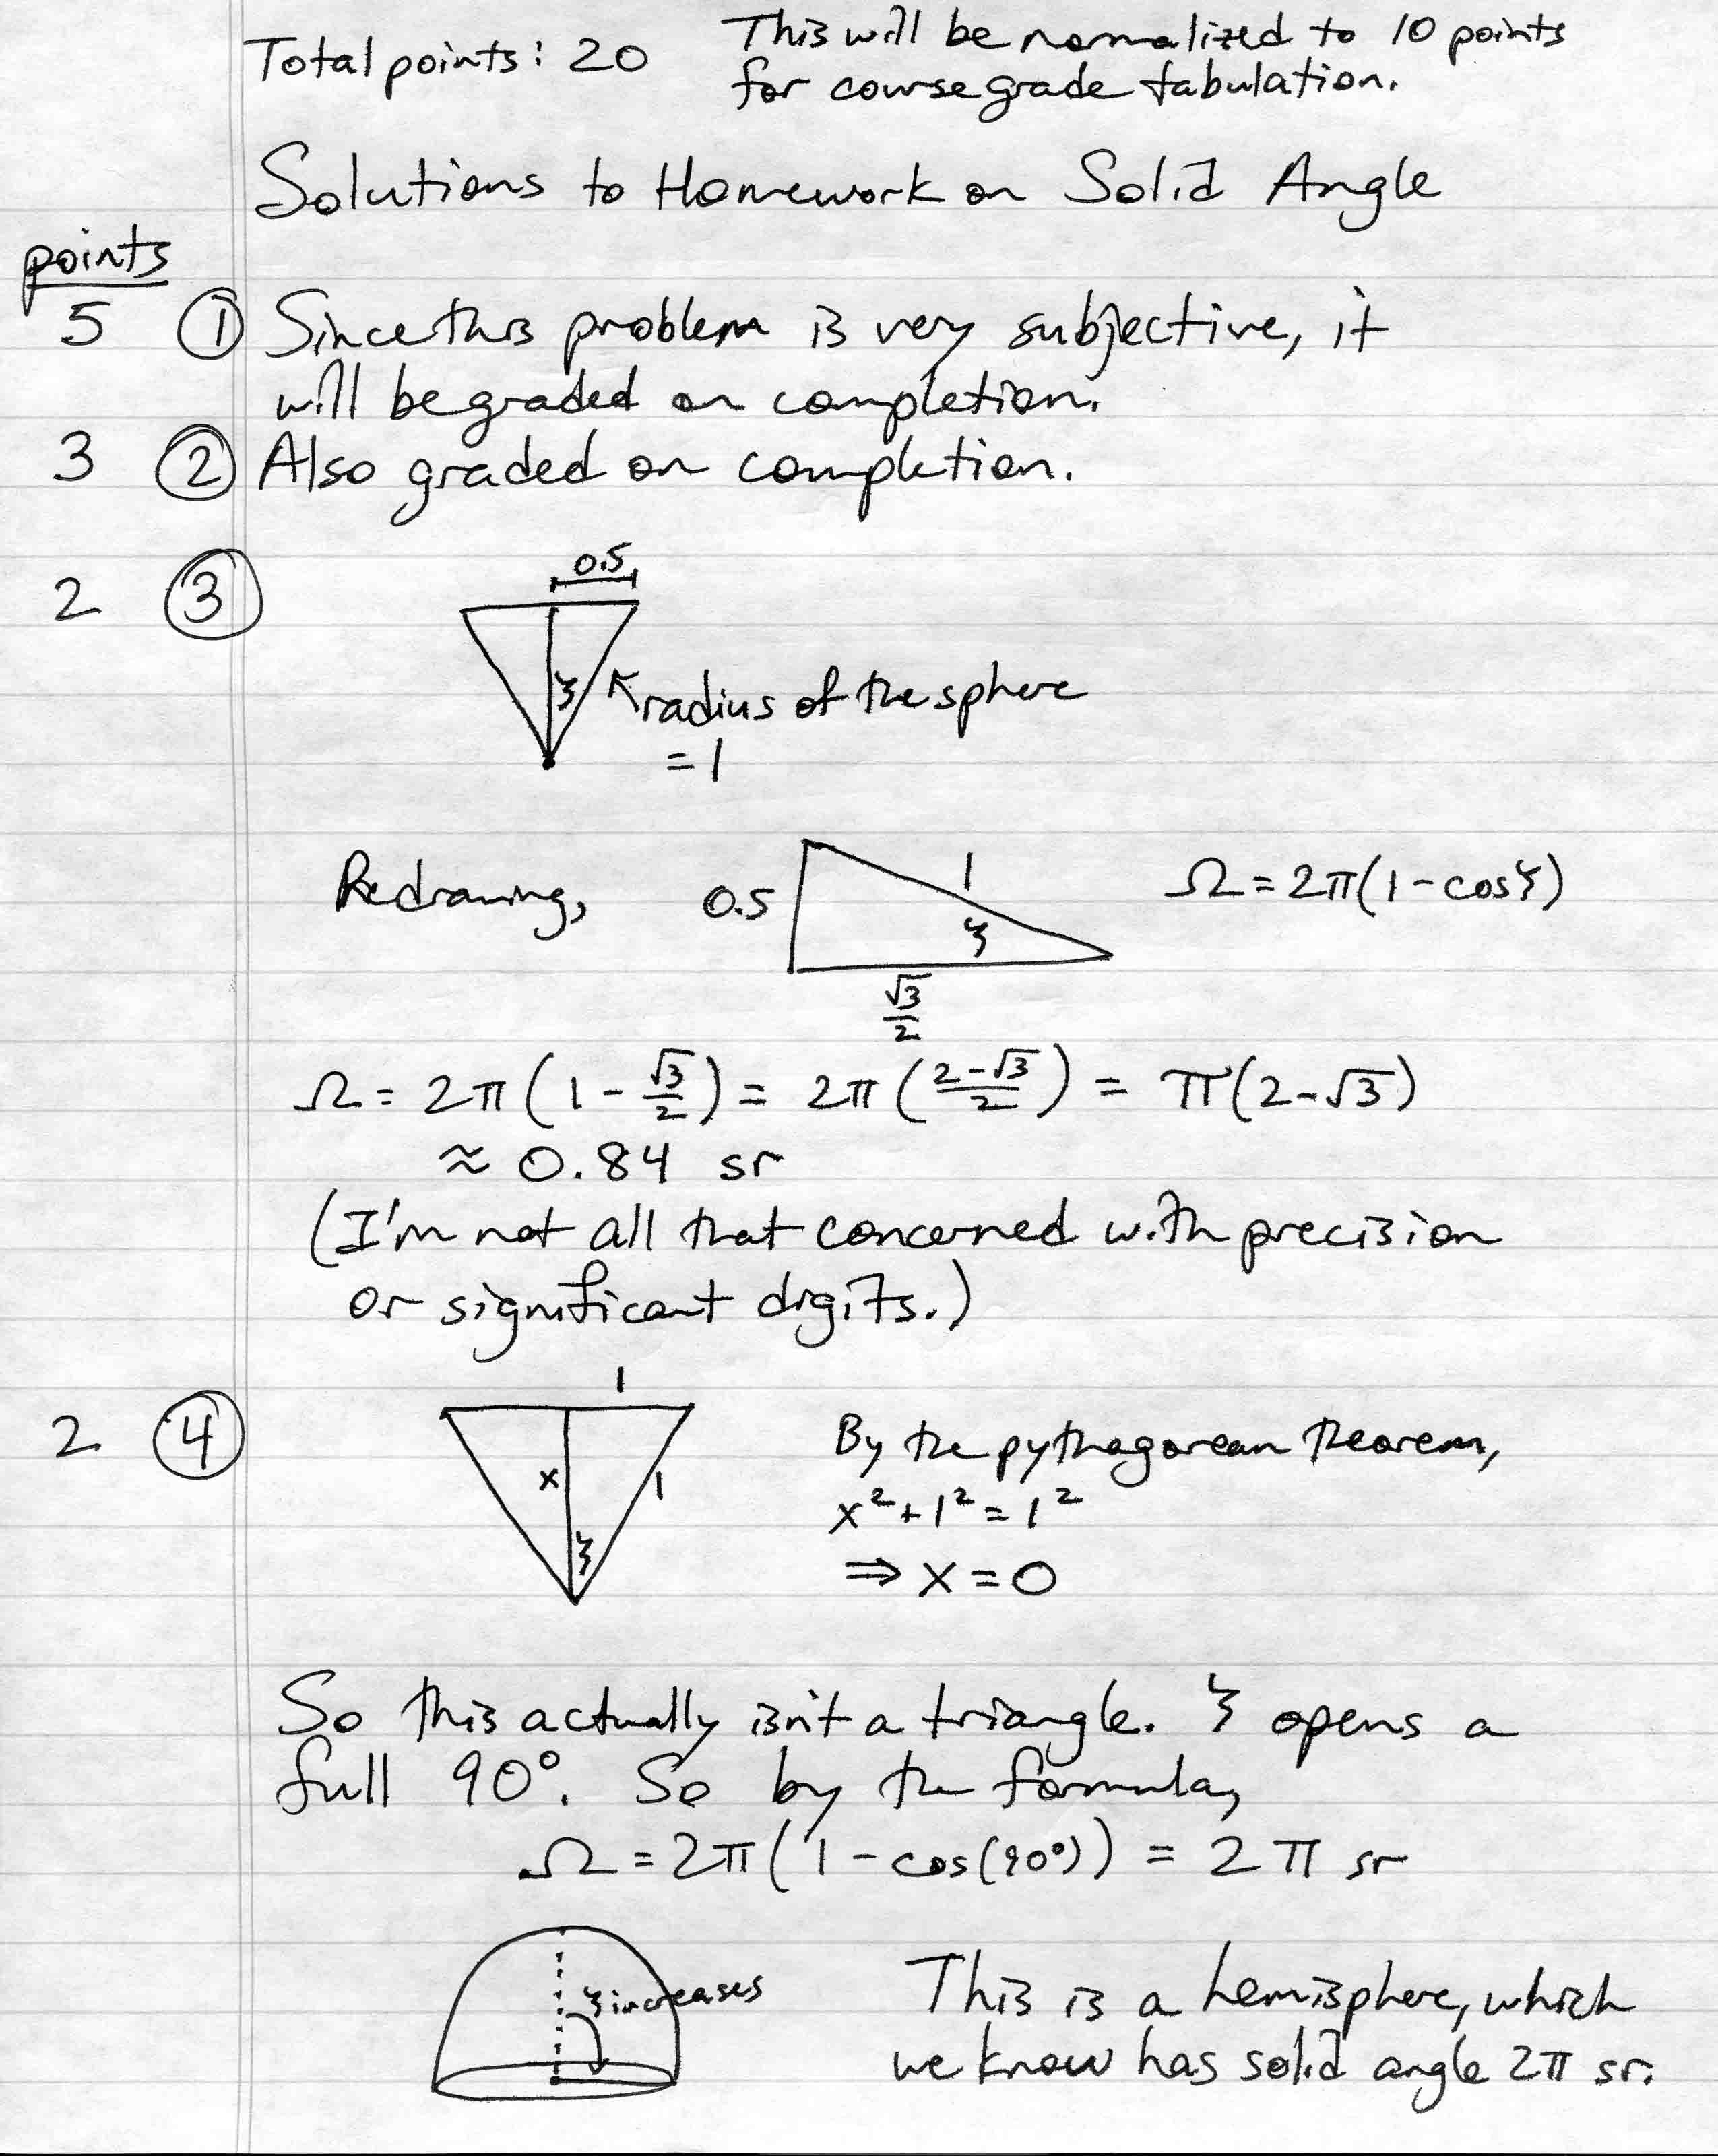 Page 1 (problems 1-4)